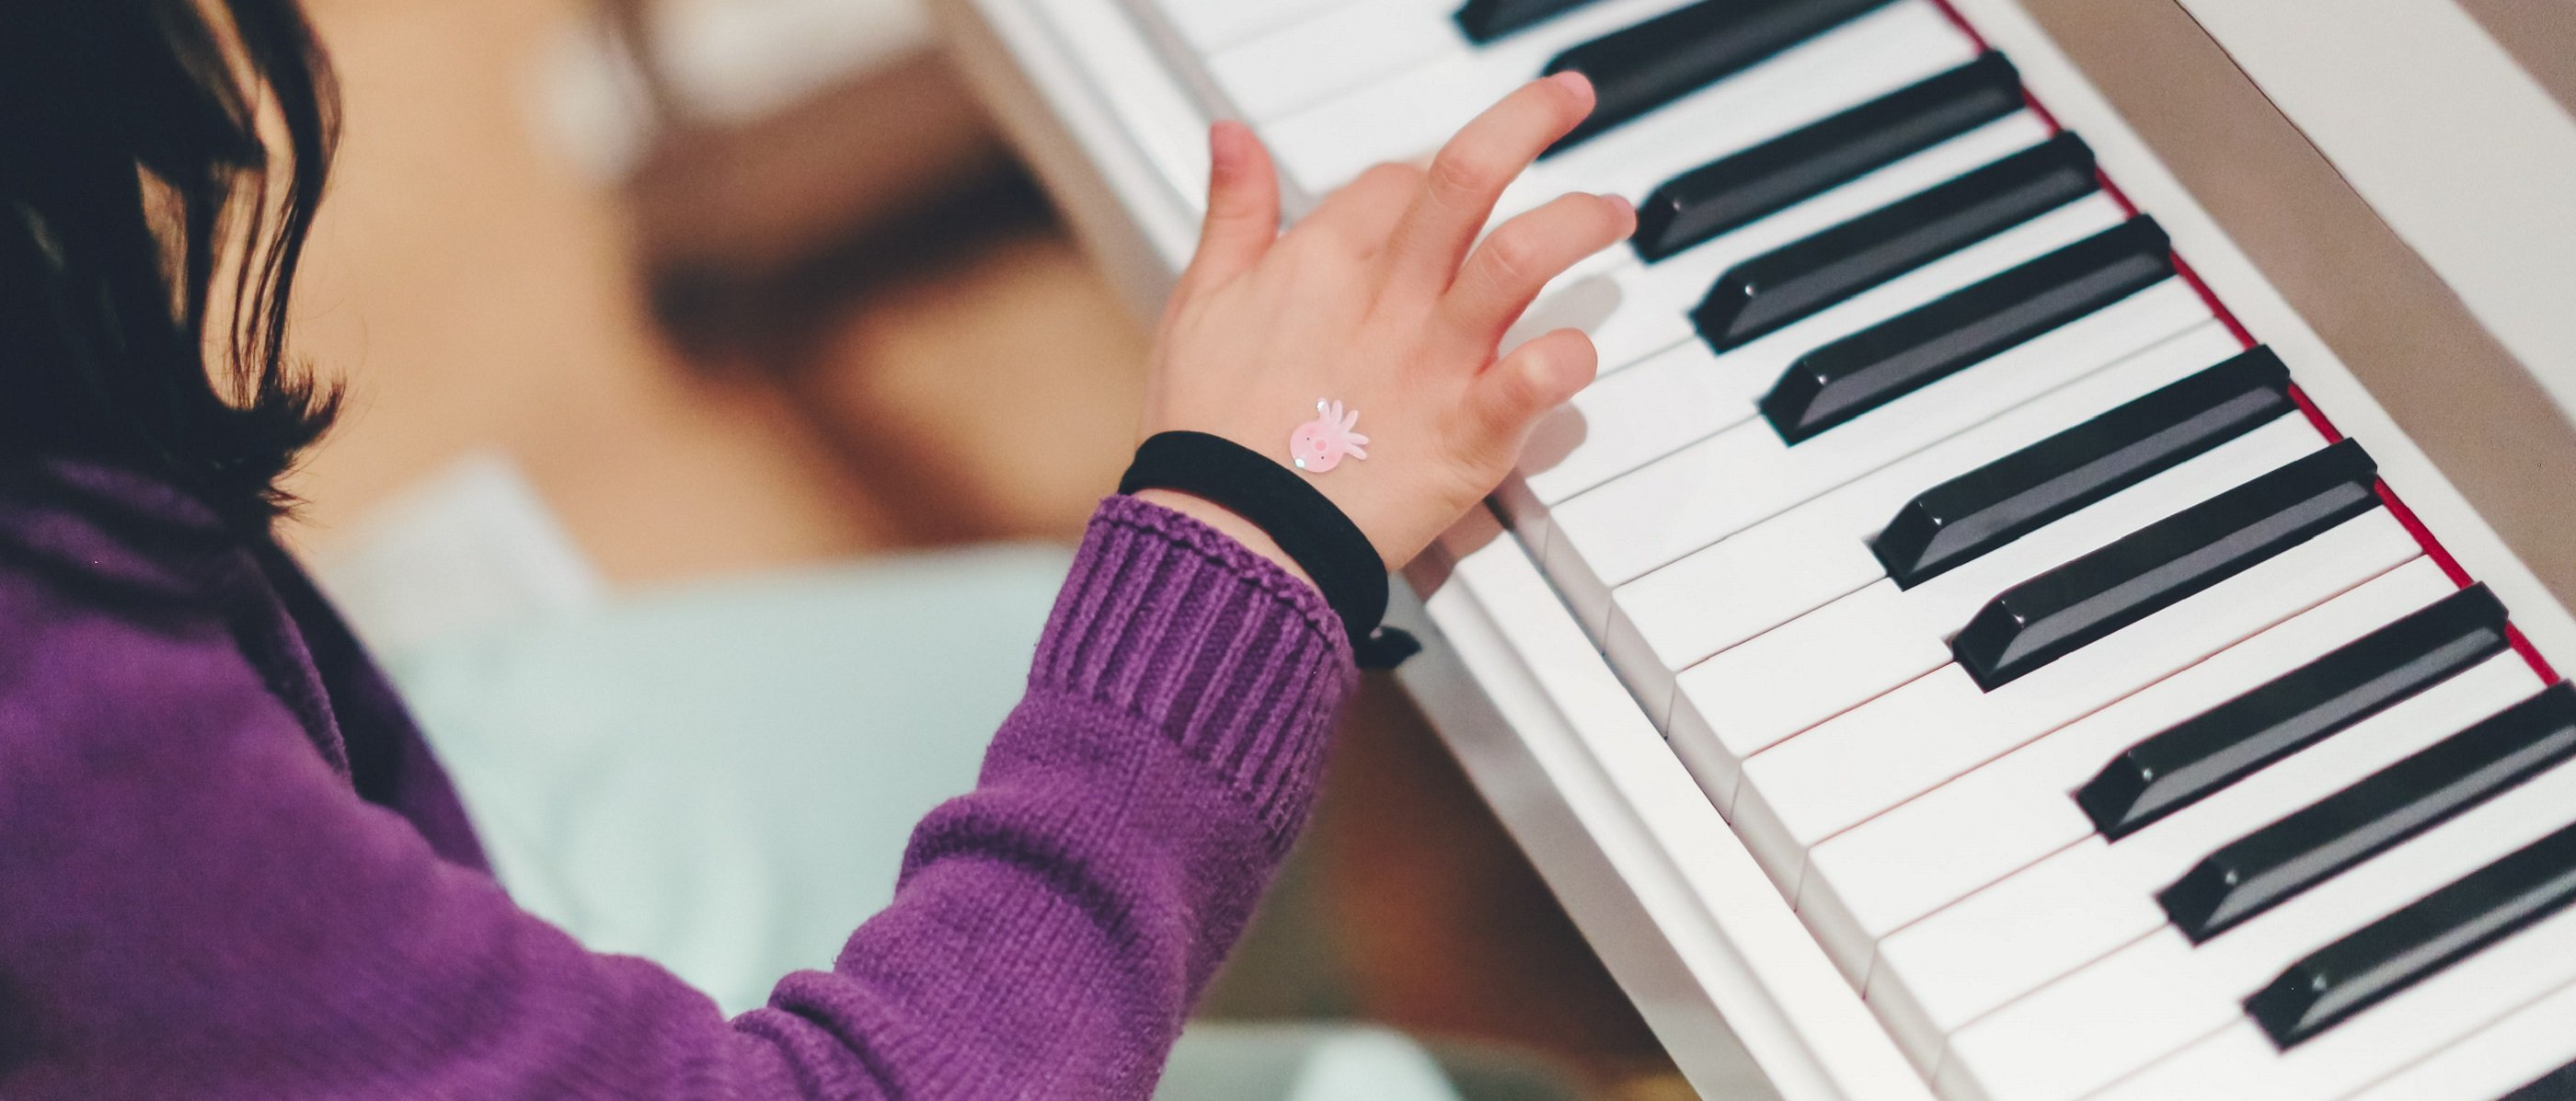 A child's right arm and hand as they press a key on a white piano. They wear a purple jumper, a black wristband and a pink octopus sticker on their hand.